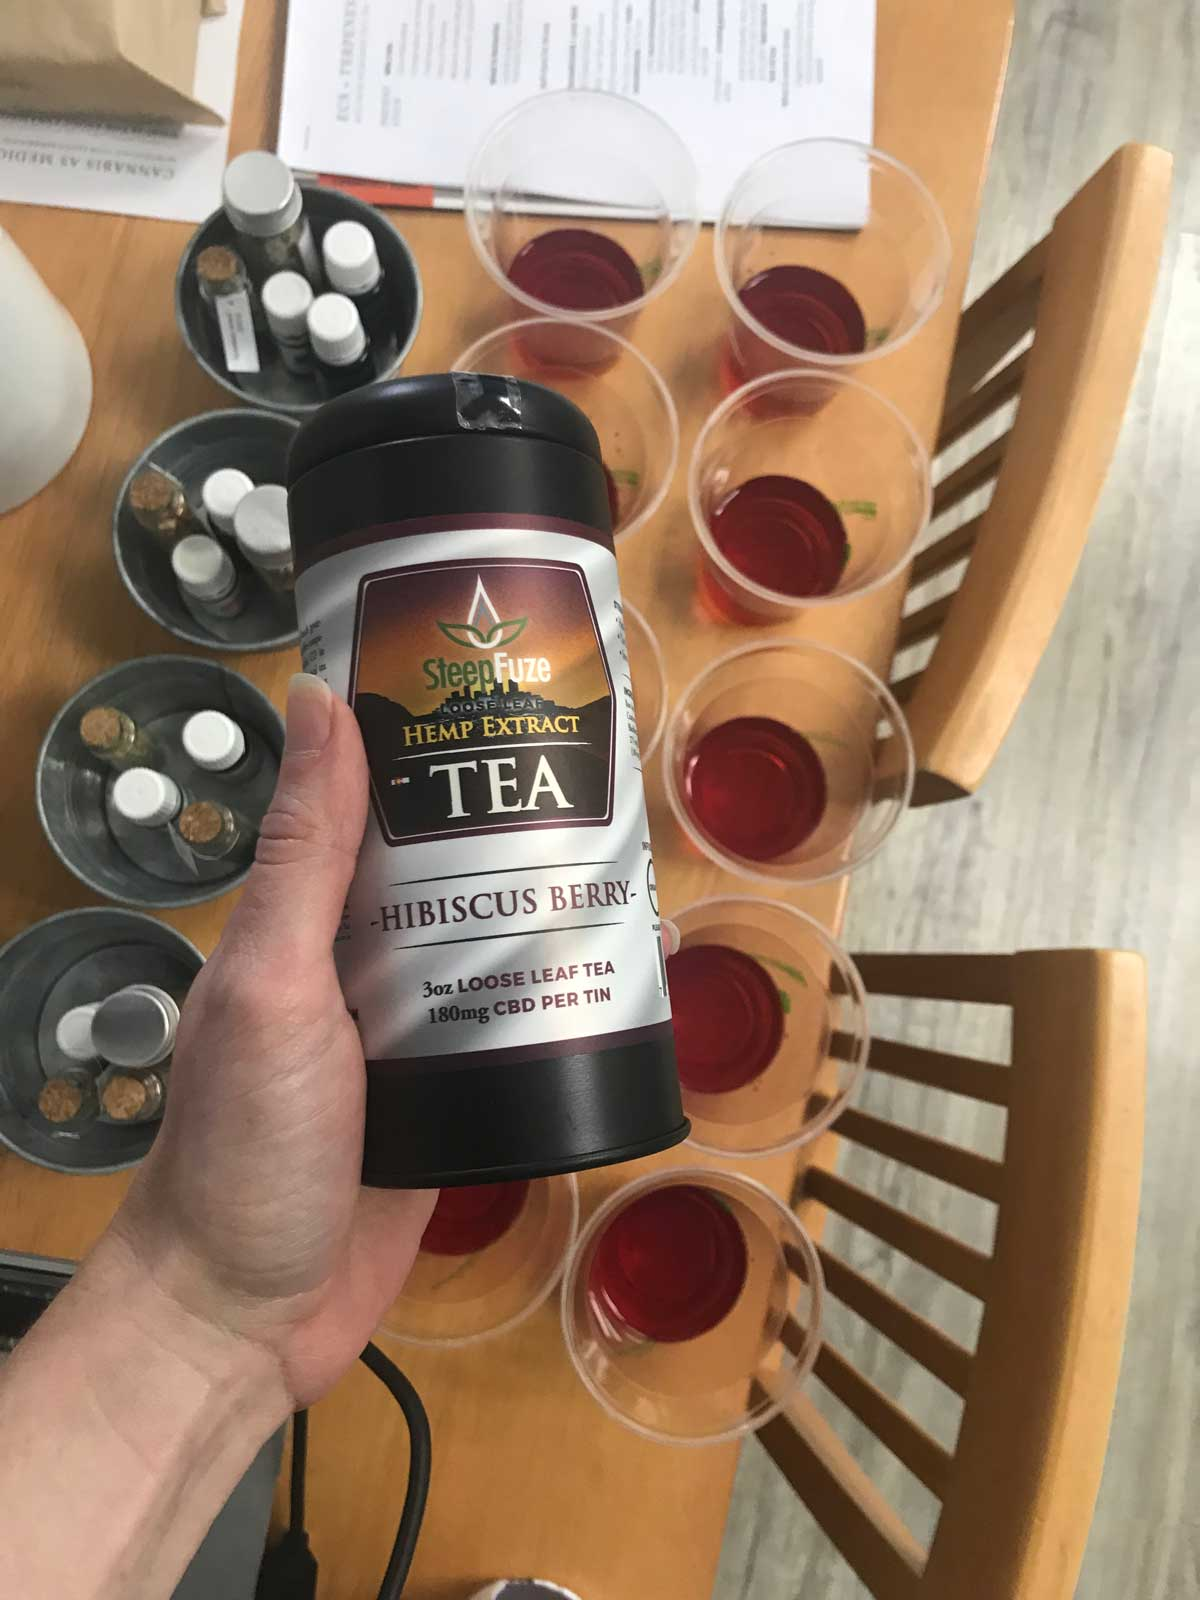 Guests got to sample  Steepfuze's  Hibiscus Berry CBD-infused tea